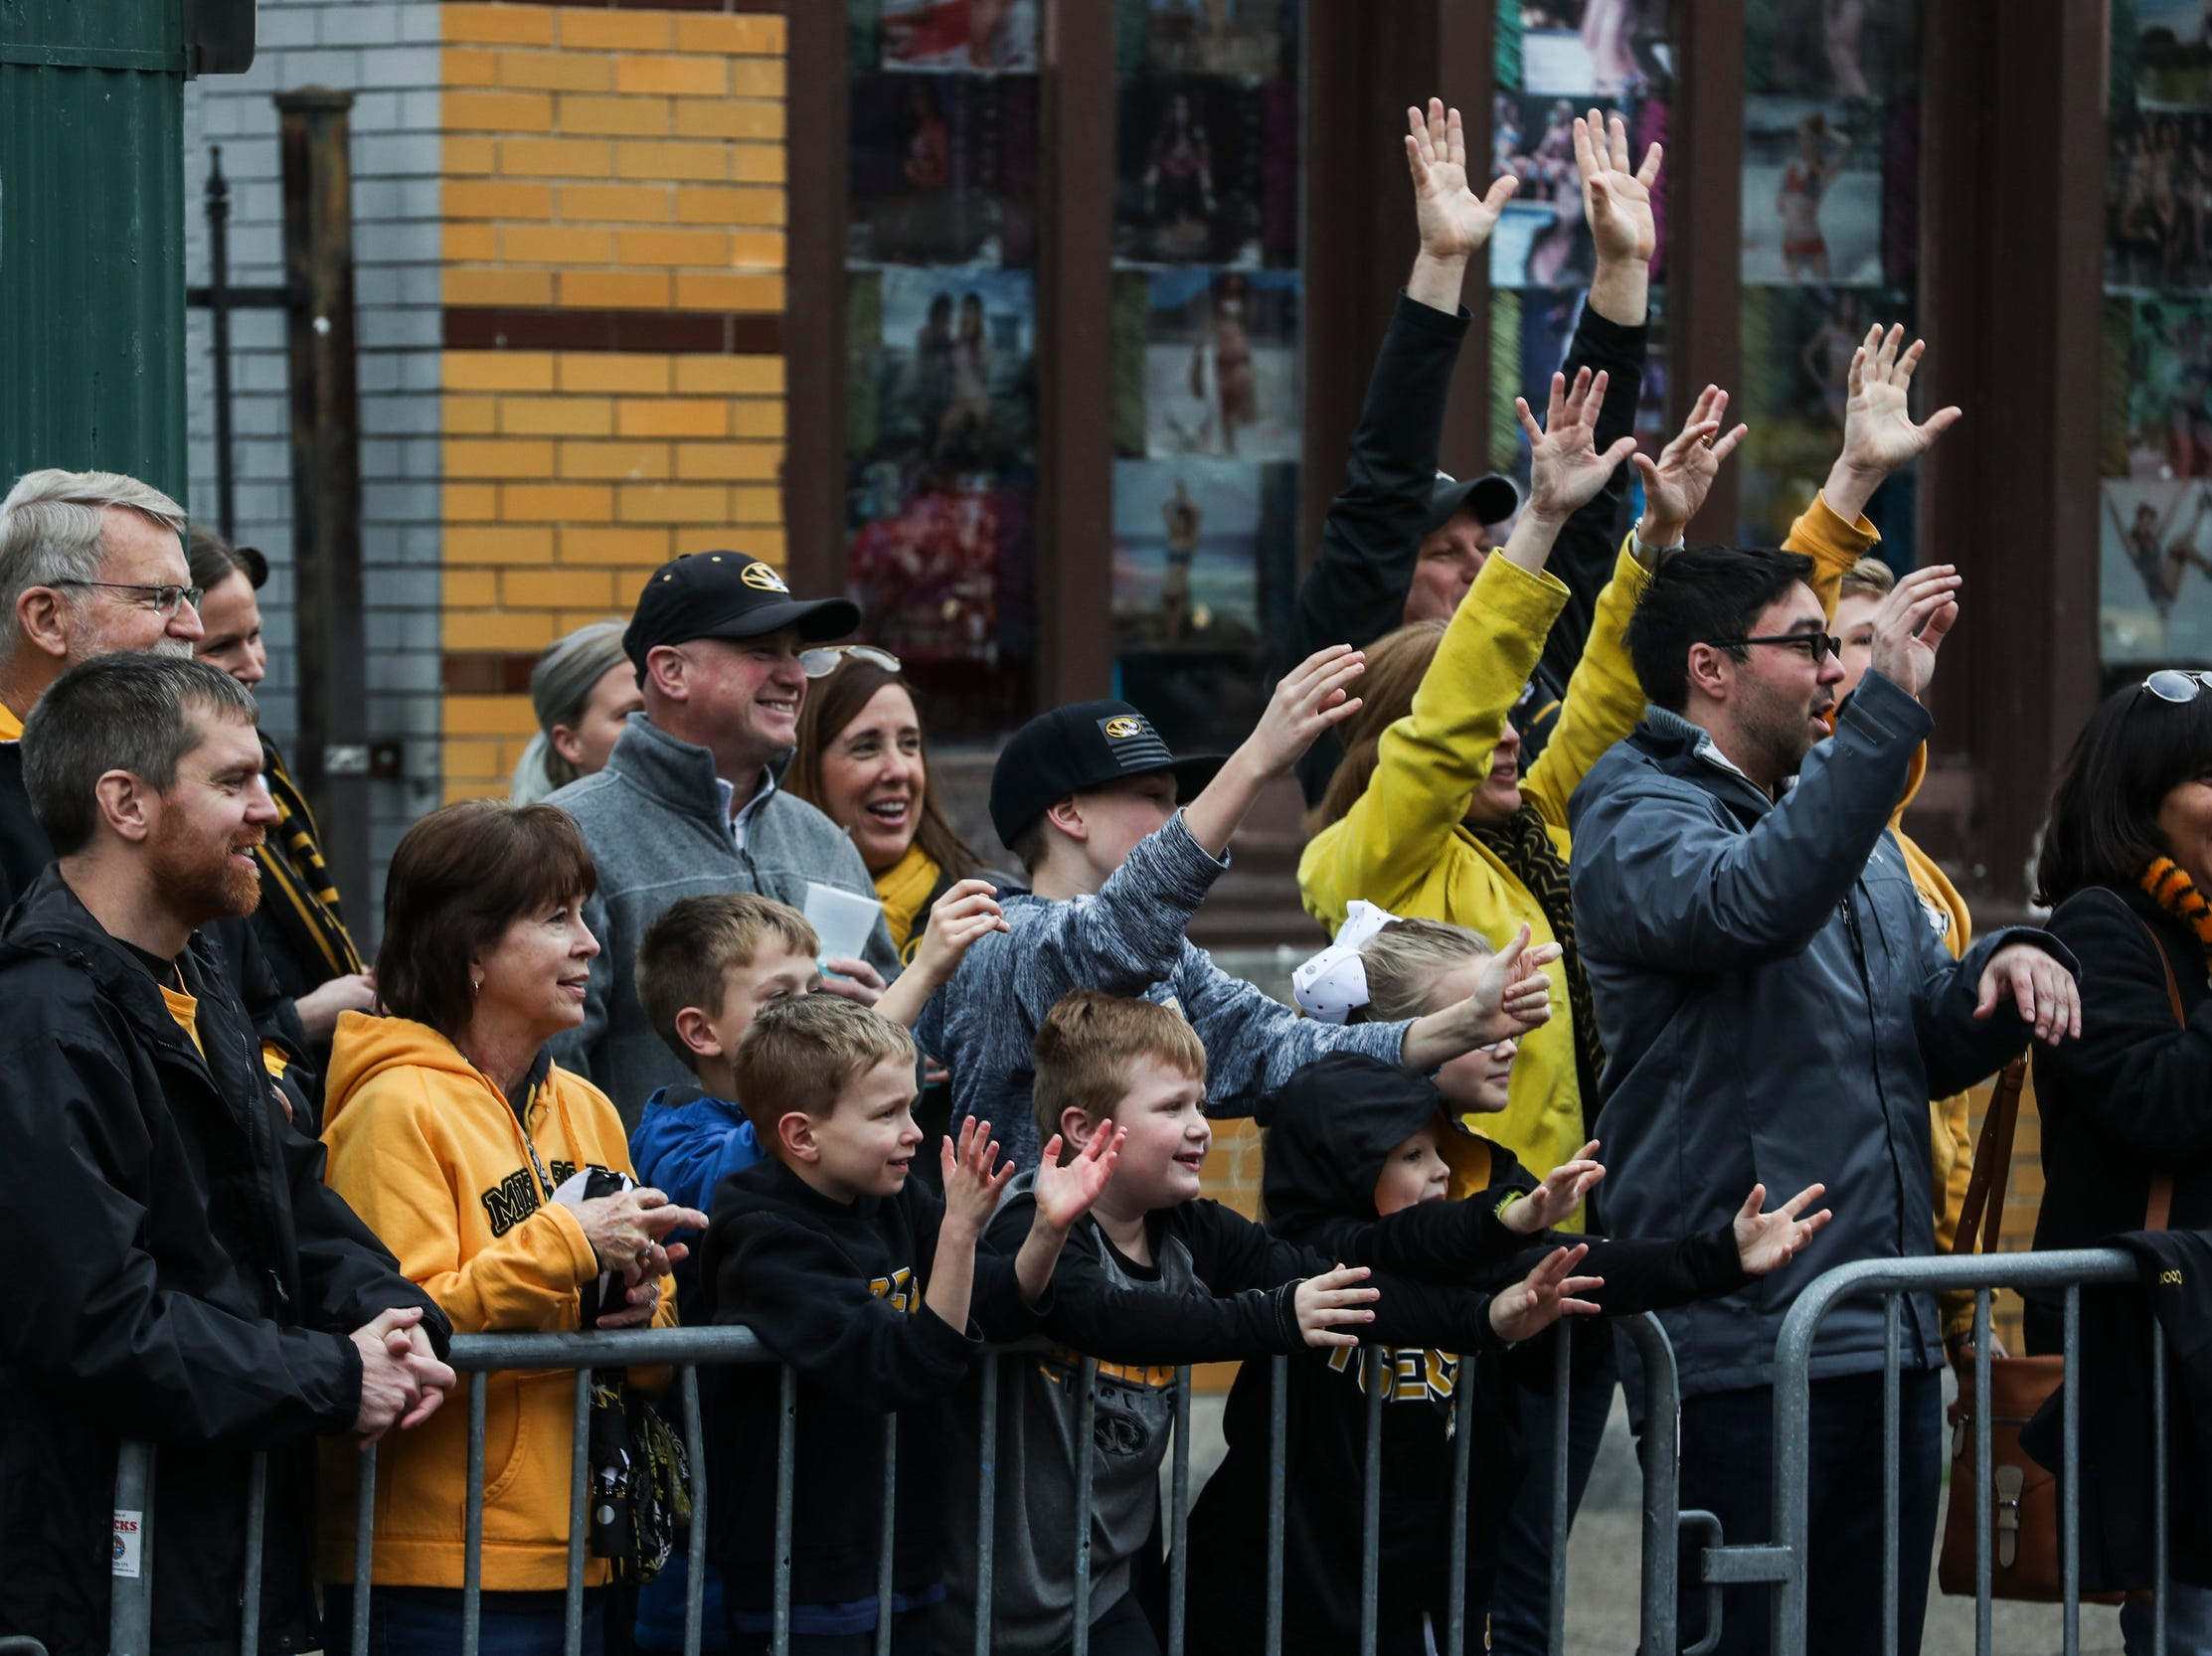 December 30 2018 - Missouri fans reach out Scenes during the Annual Liberty Bowl Parade & Pep Rally on Sunday. On Monday the Oklahoma State Cowboys and Missouri Tigers play in the 2018 AutoZone Liberty Bowl.